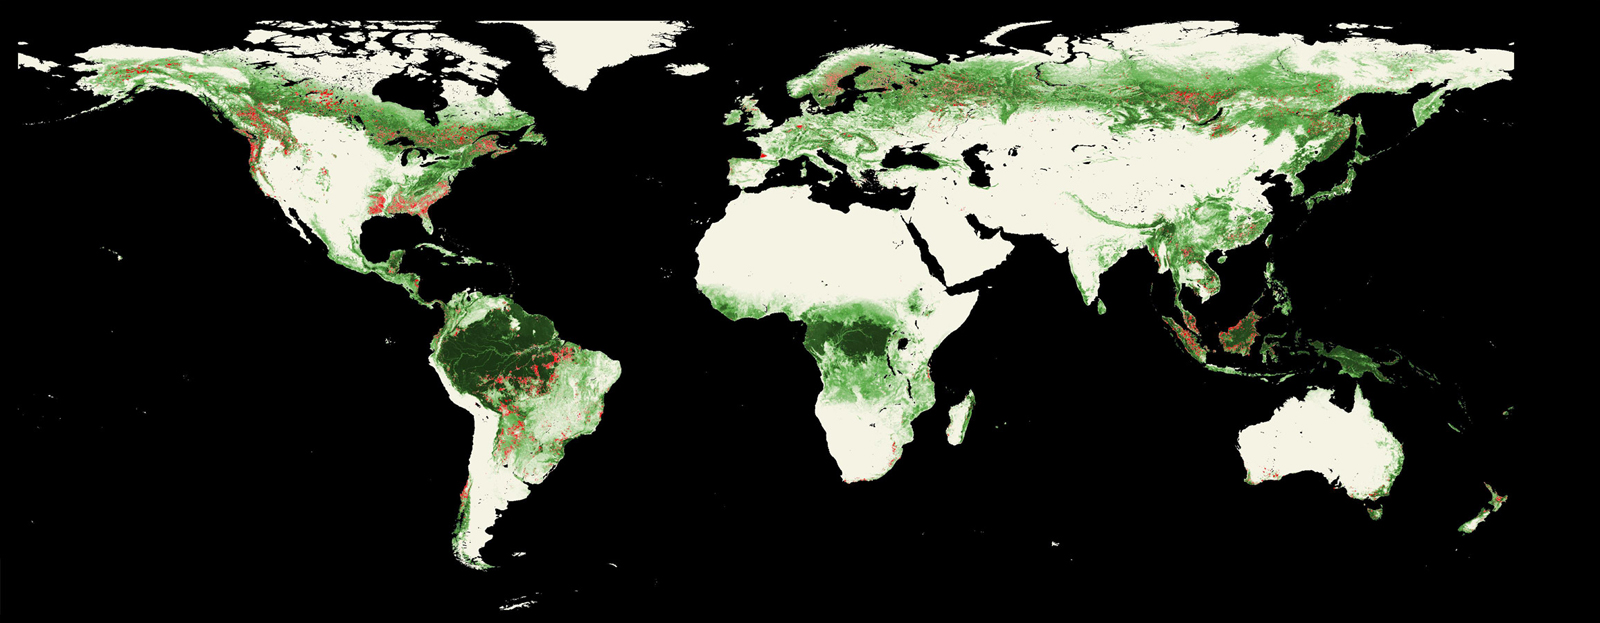 International Deforestation Patterns in Tropical Rainforests